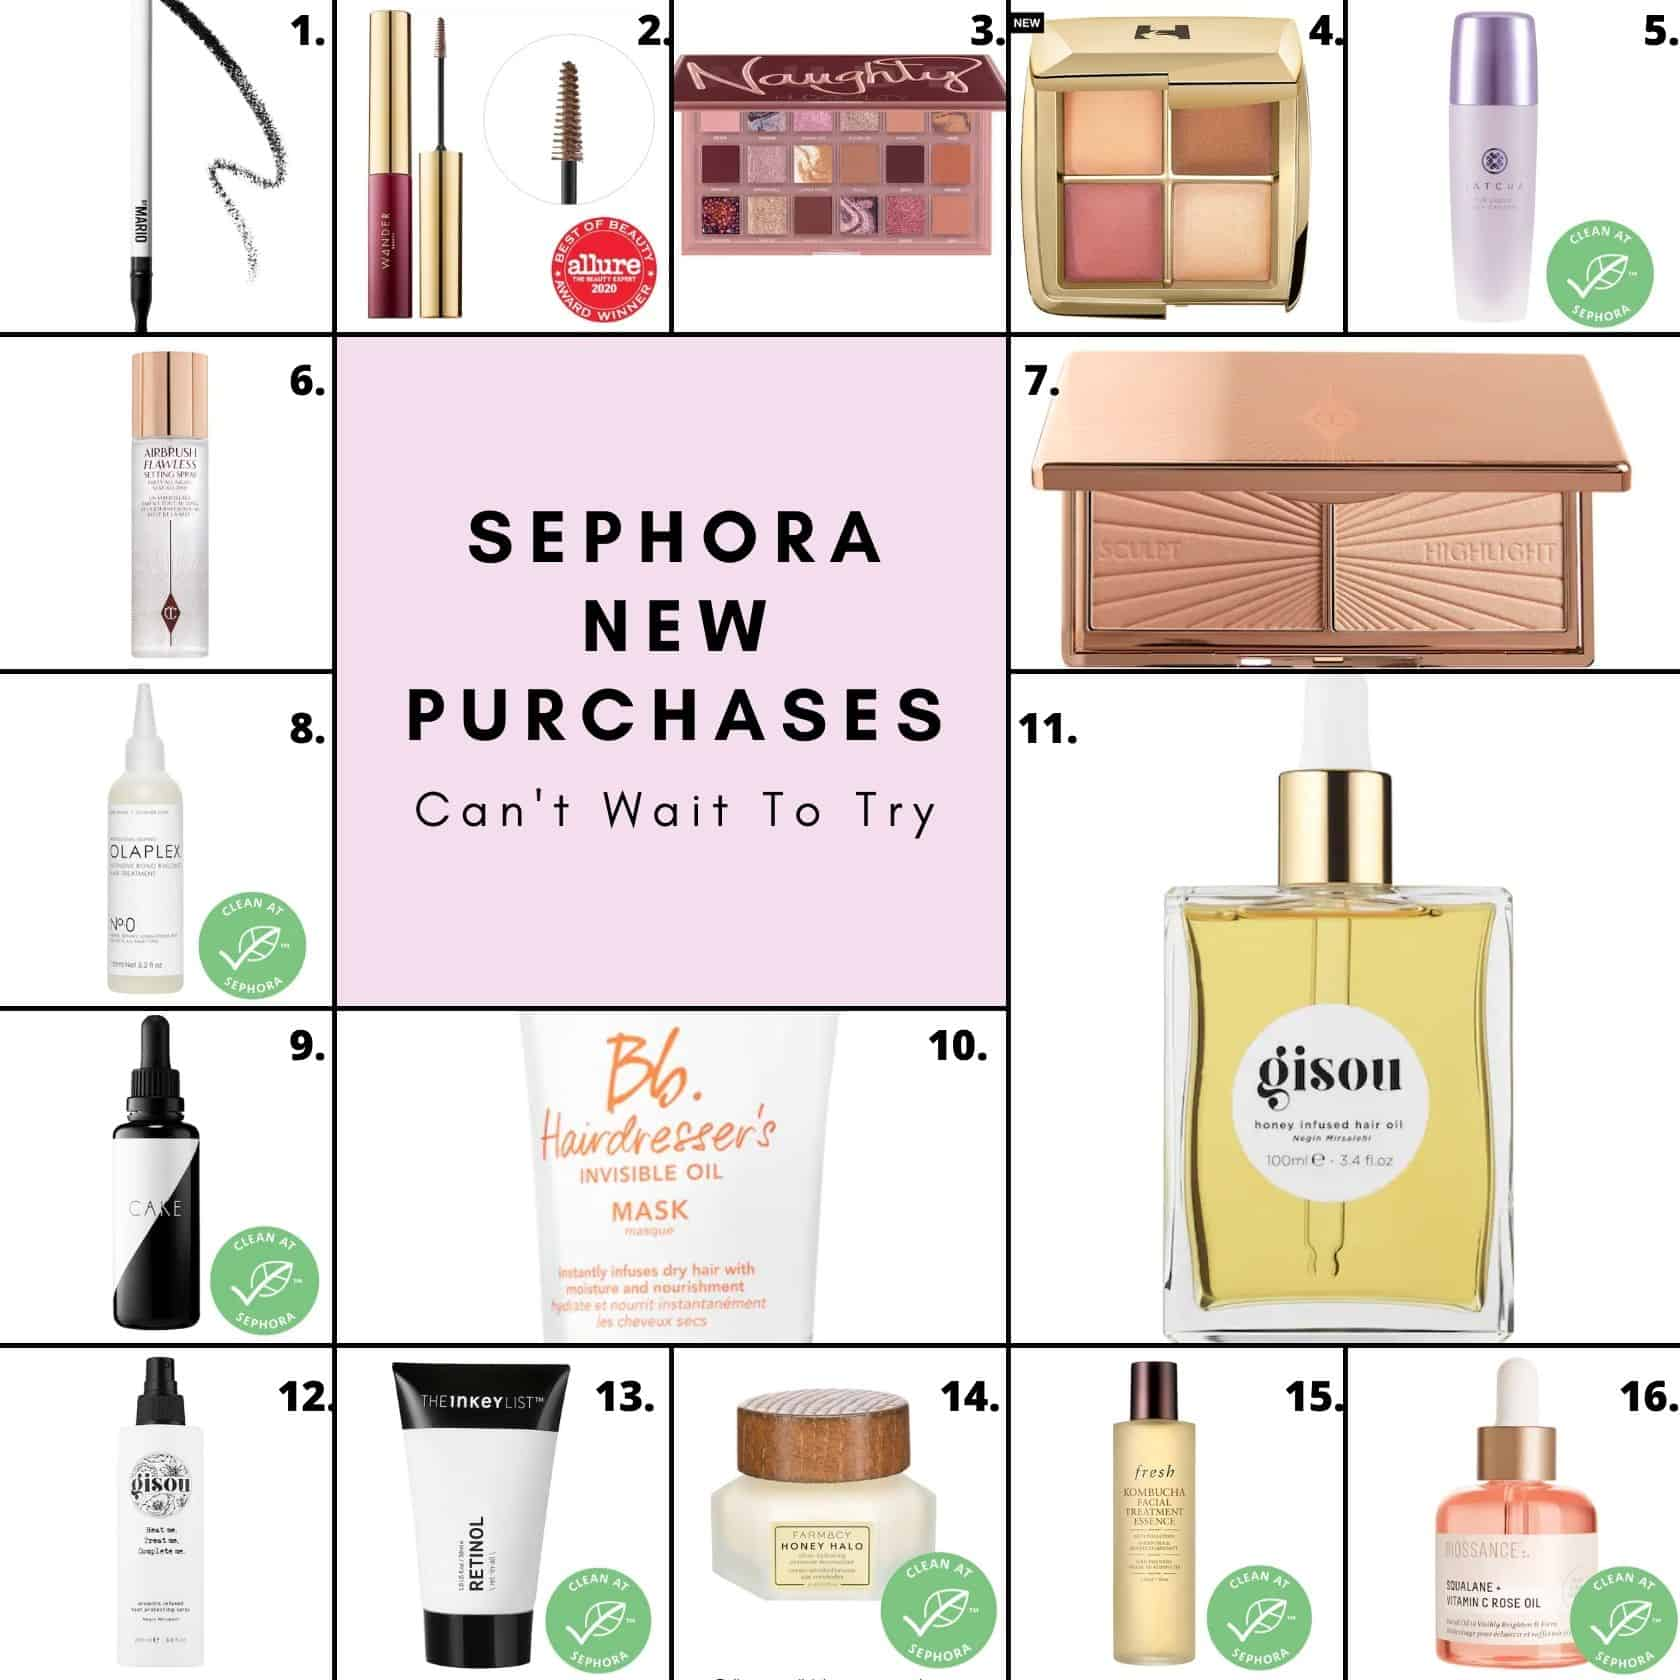 Sephora New Purchases